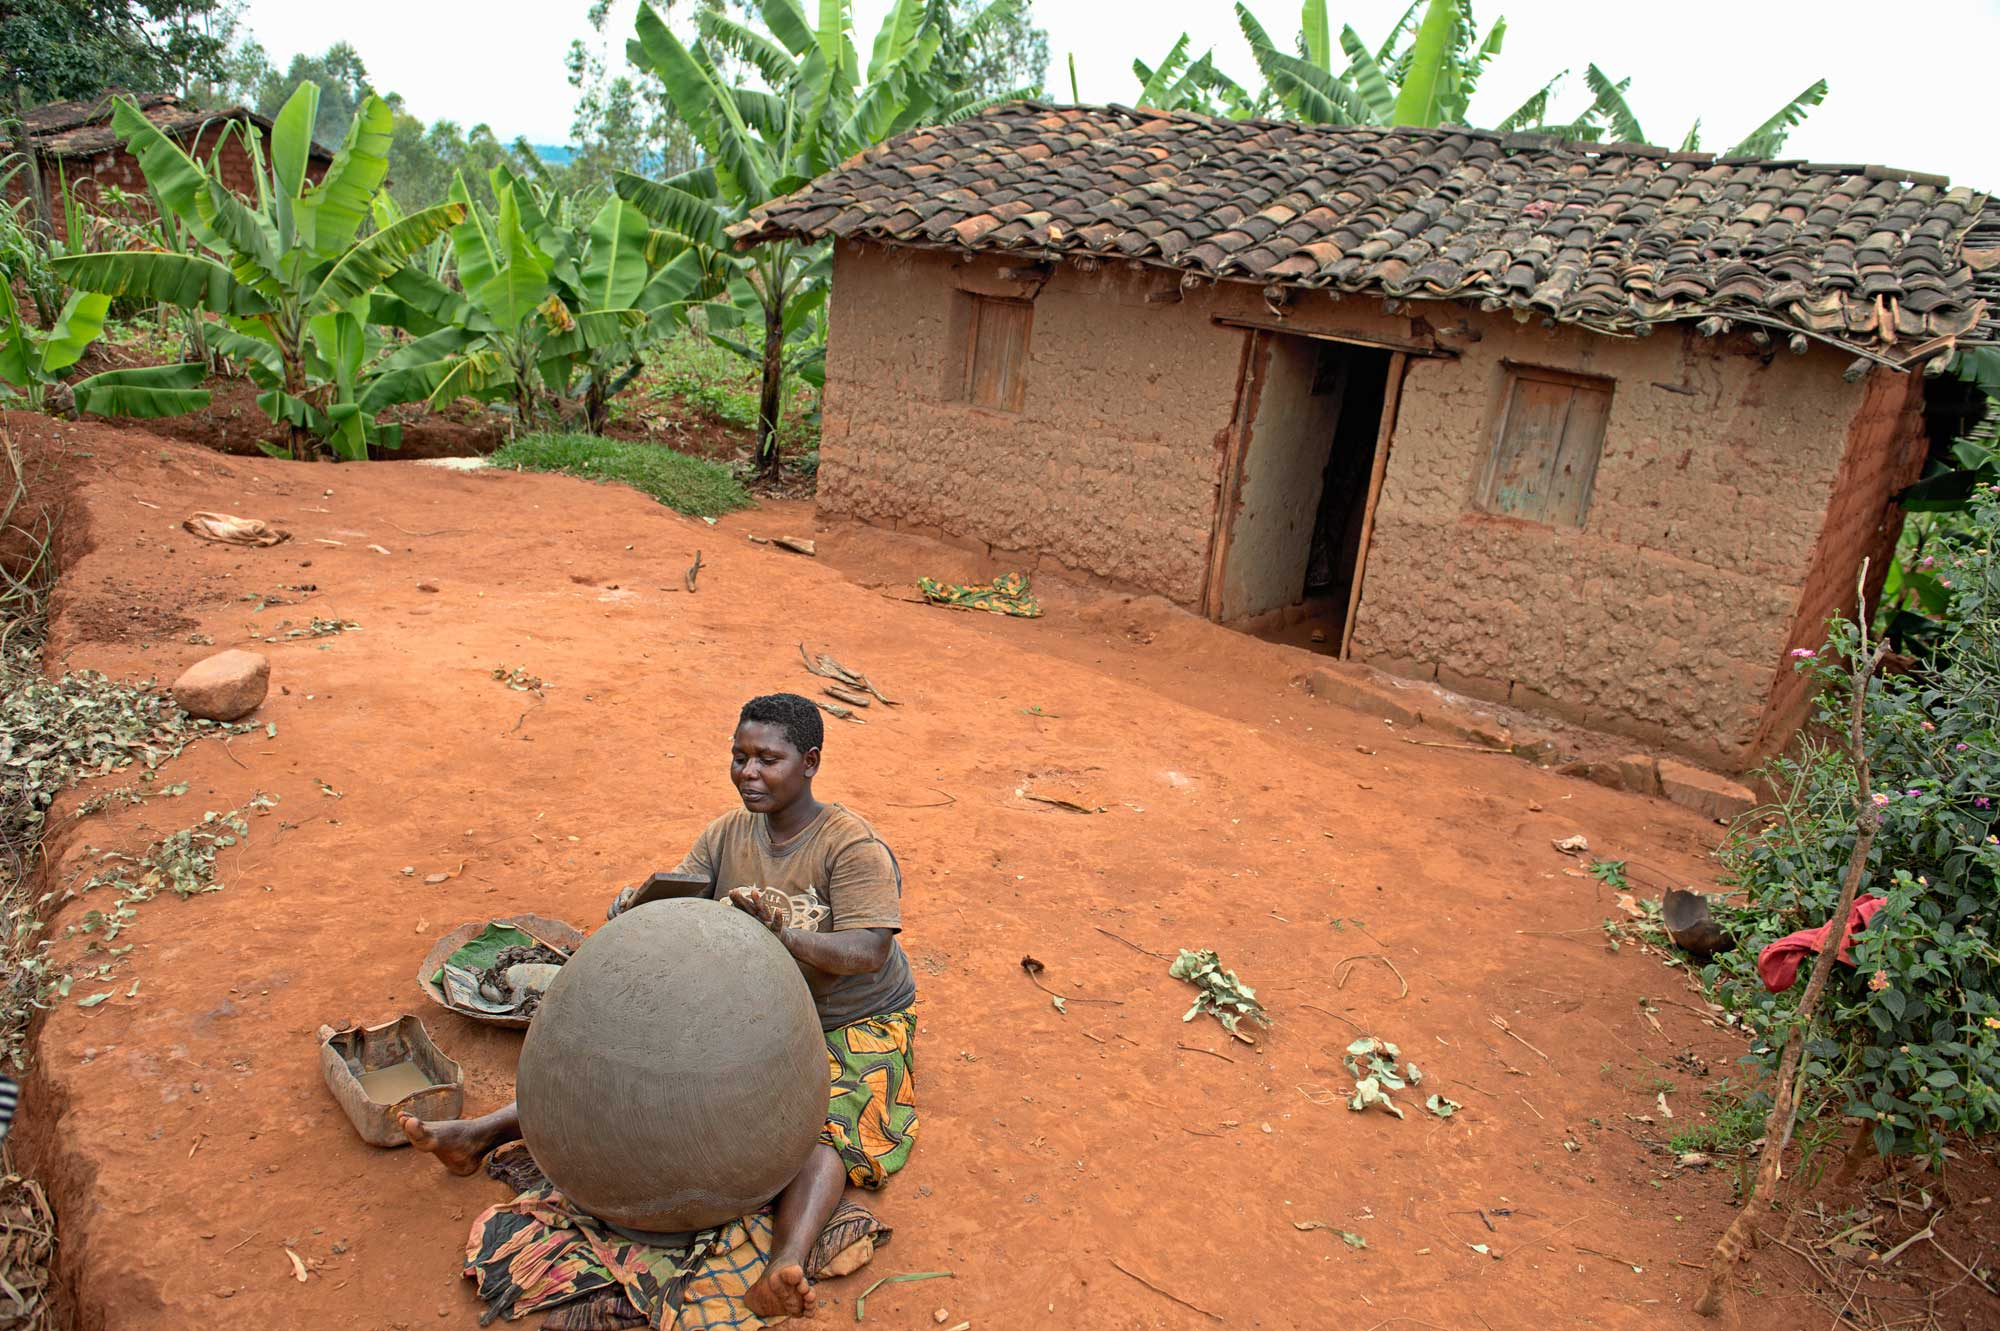 A women sits on the ground out side of a building shaping a large pot.